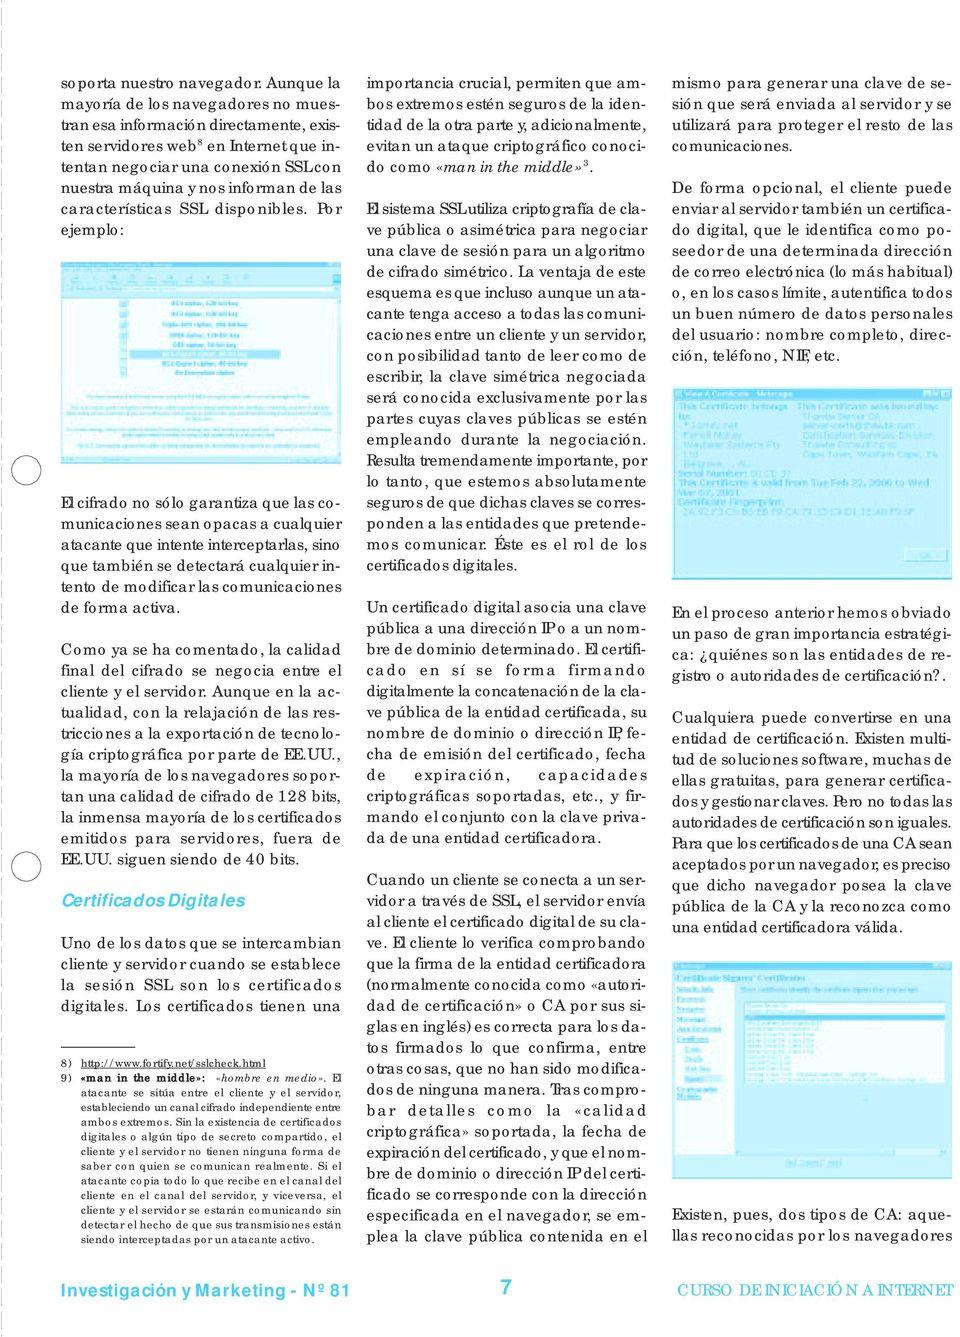 características SSL disponibles.